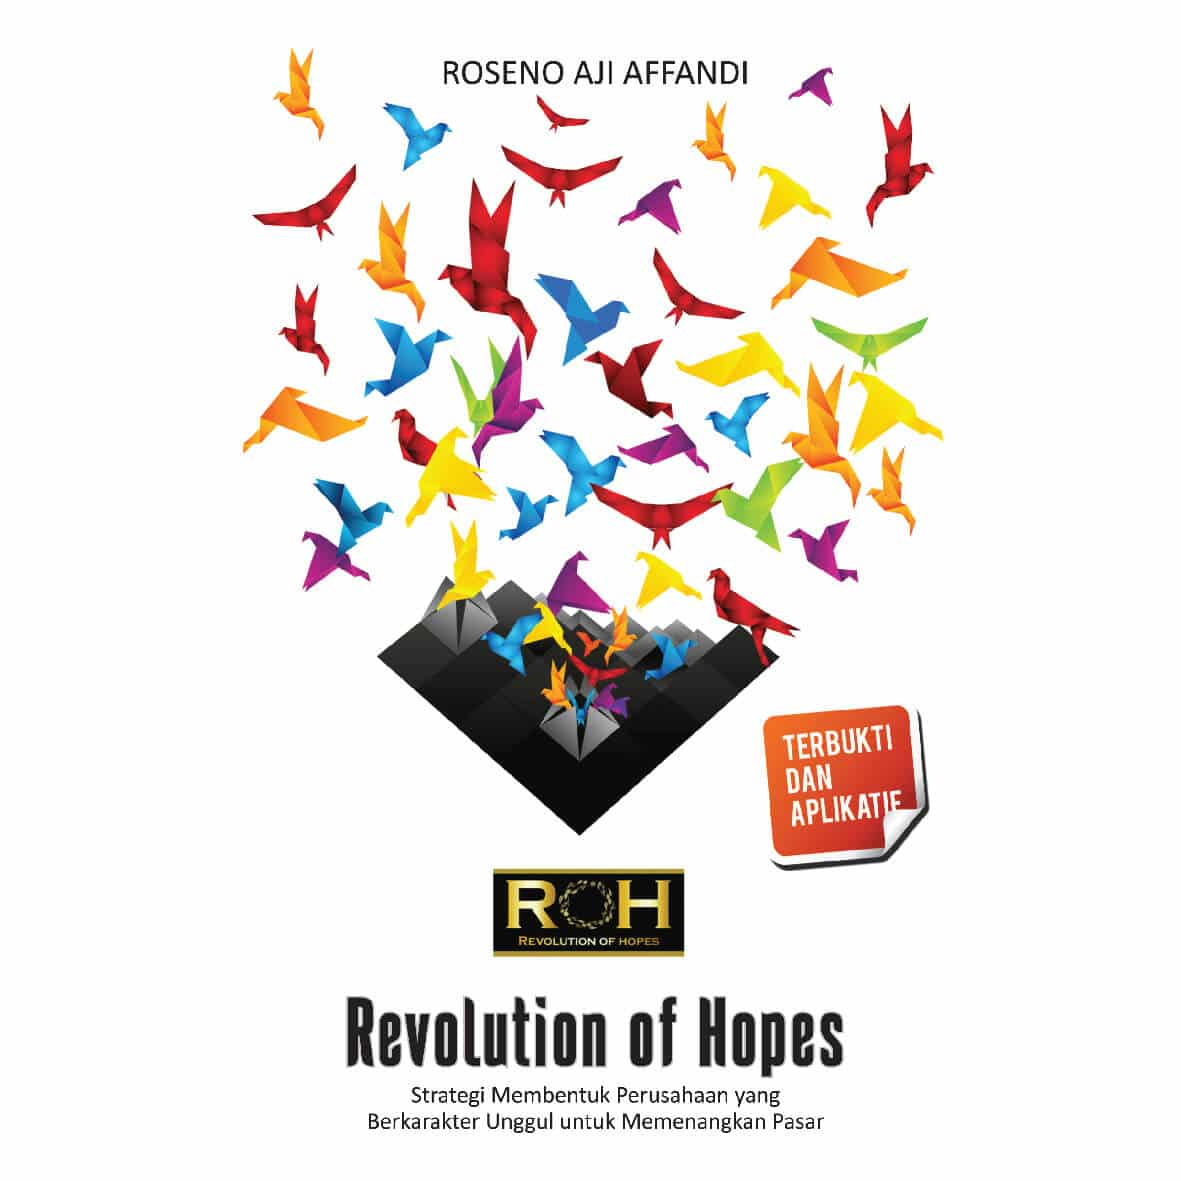 Revolution of Hopes (ROH)